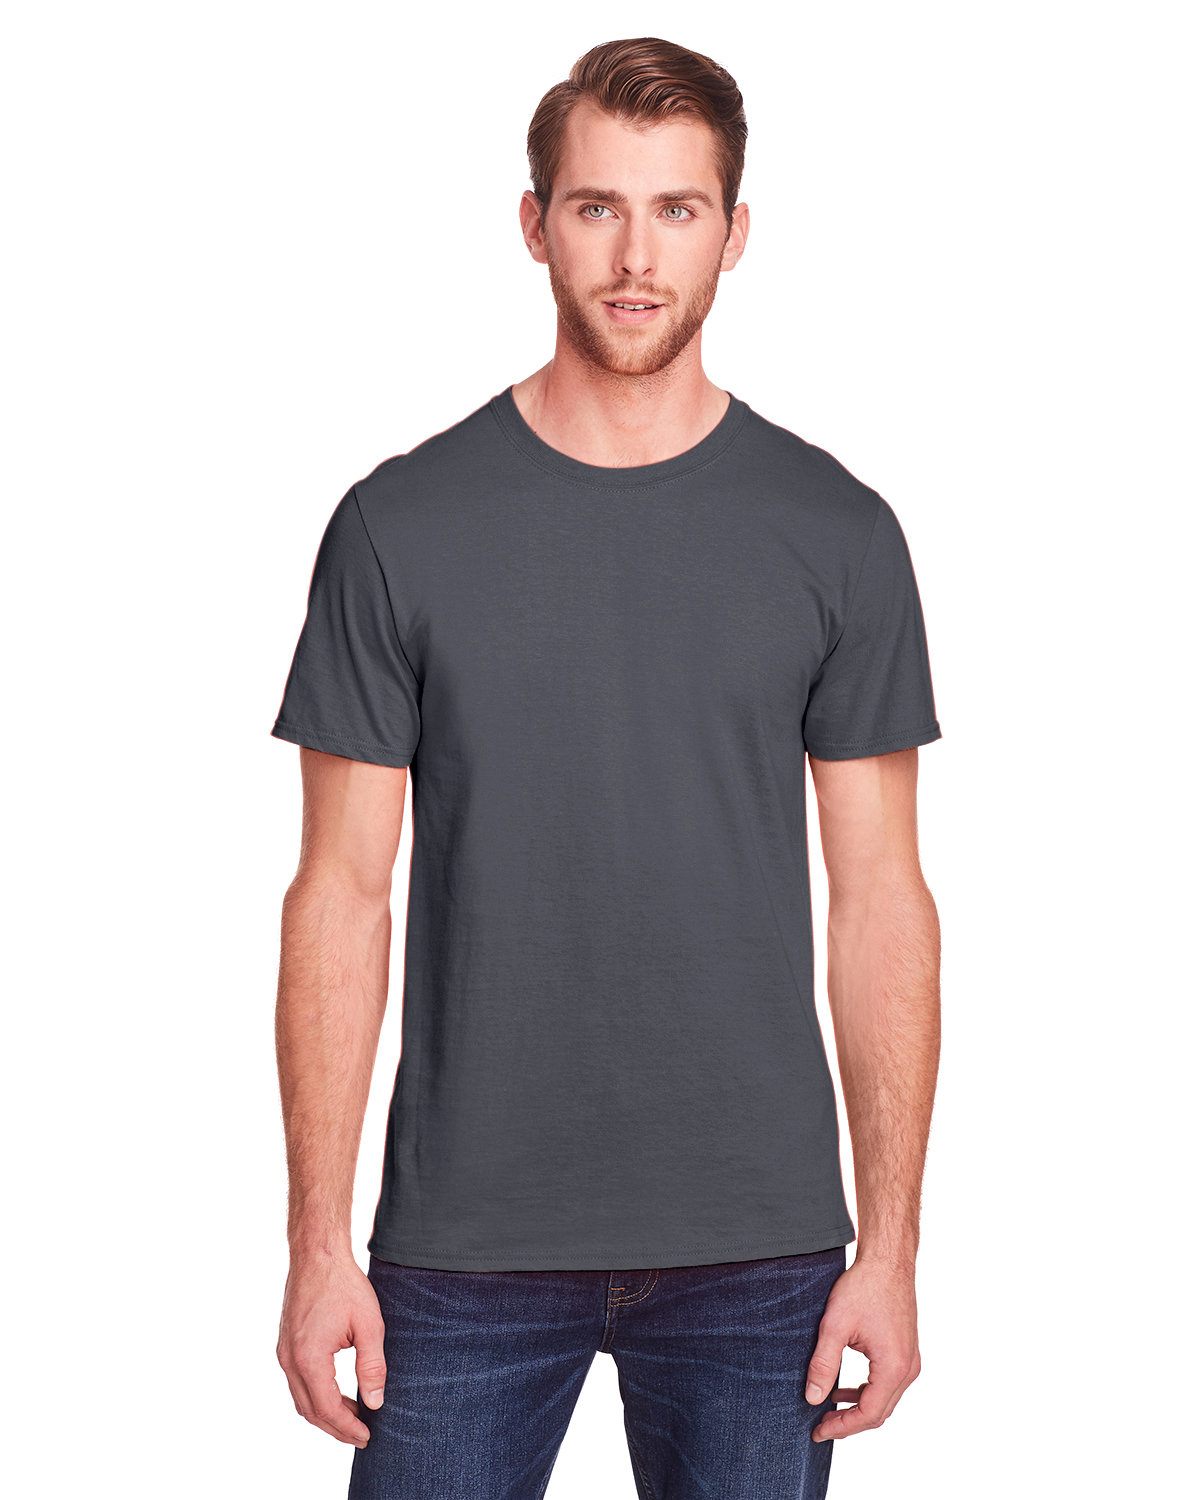 Fruit of the Loom Adult ICONIC™ T-Shirt CHARCOAL GREY